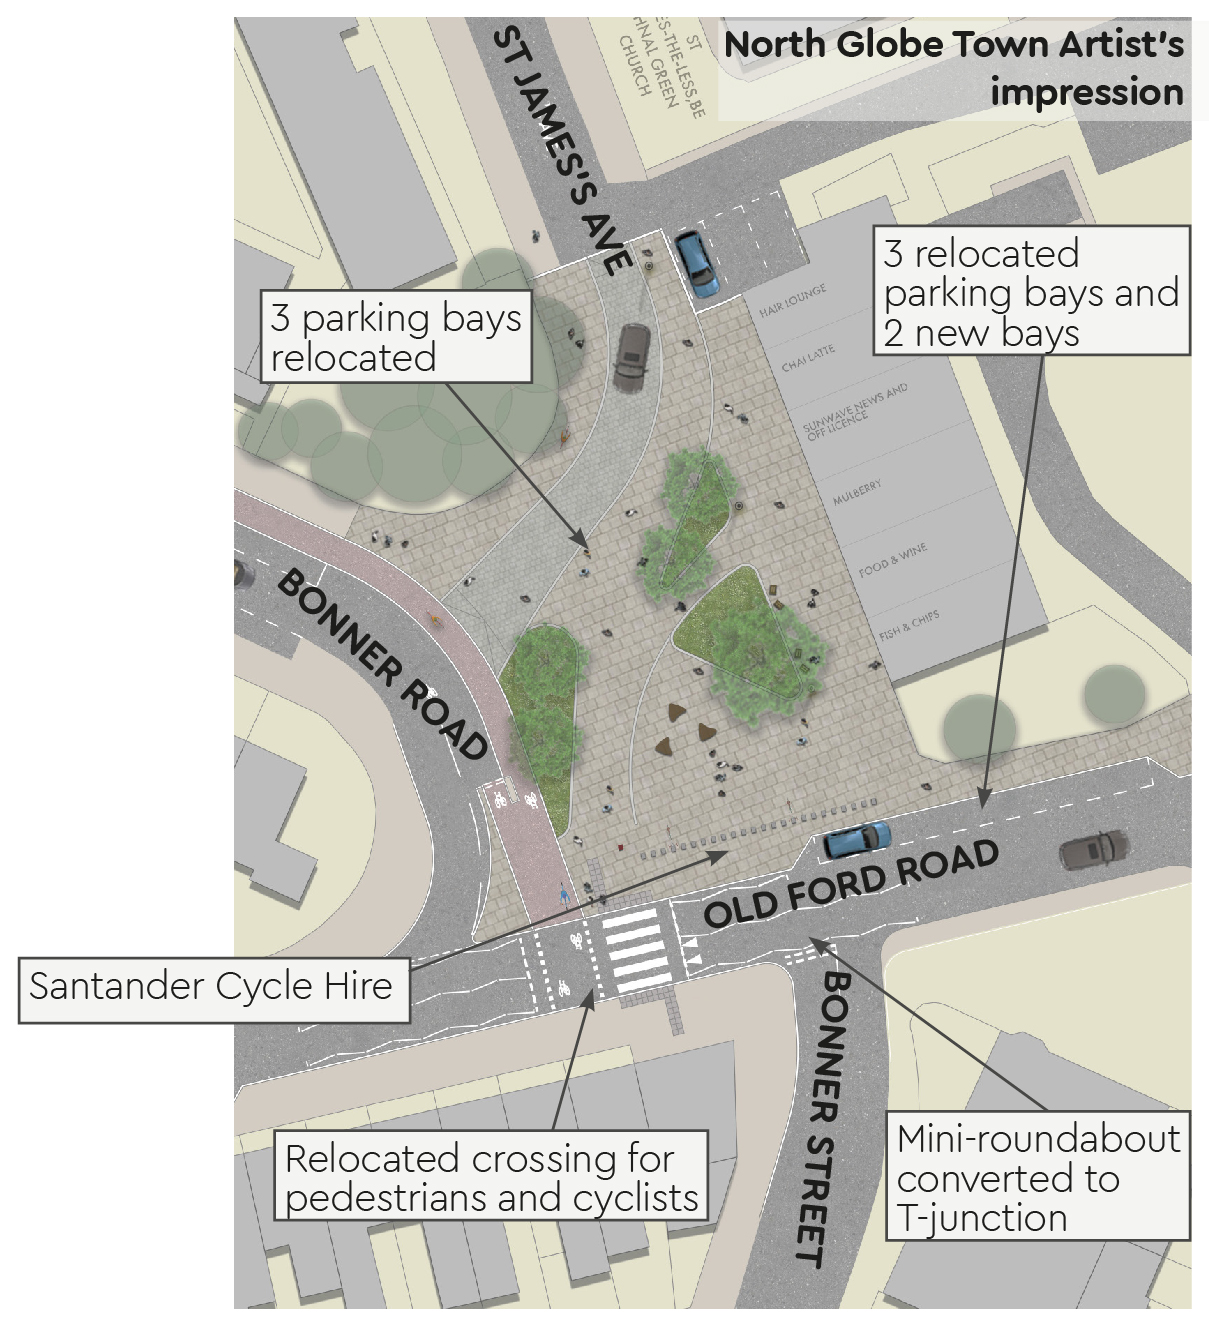 North Globe Town Square Artist's Impression: 3 relocated parking bays to south of square on Old Ford Road and 2 new bays, Santander Cycle hire, relocated pedestrian and cycle crossing and mini-roundabout converted to T-junction on Old Ford Road.